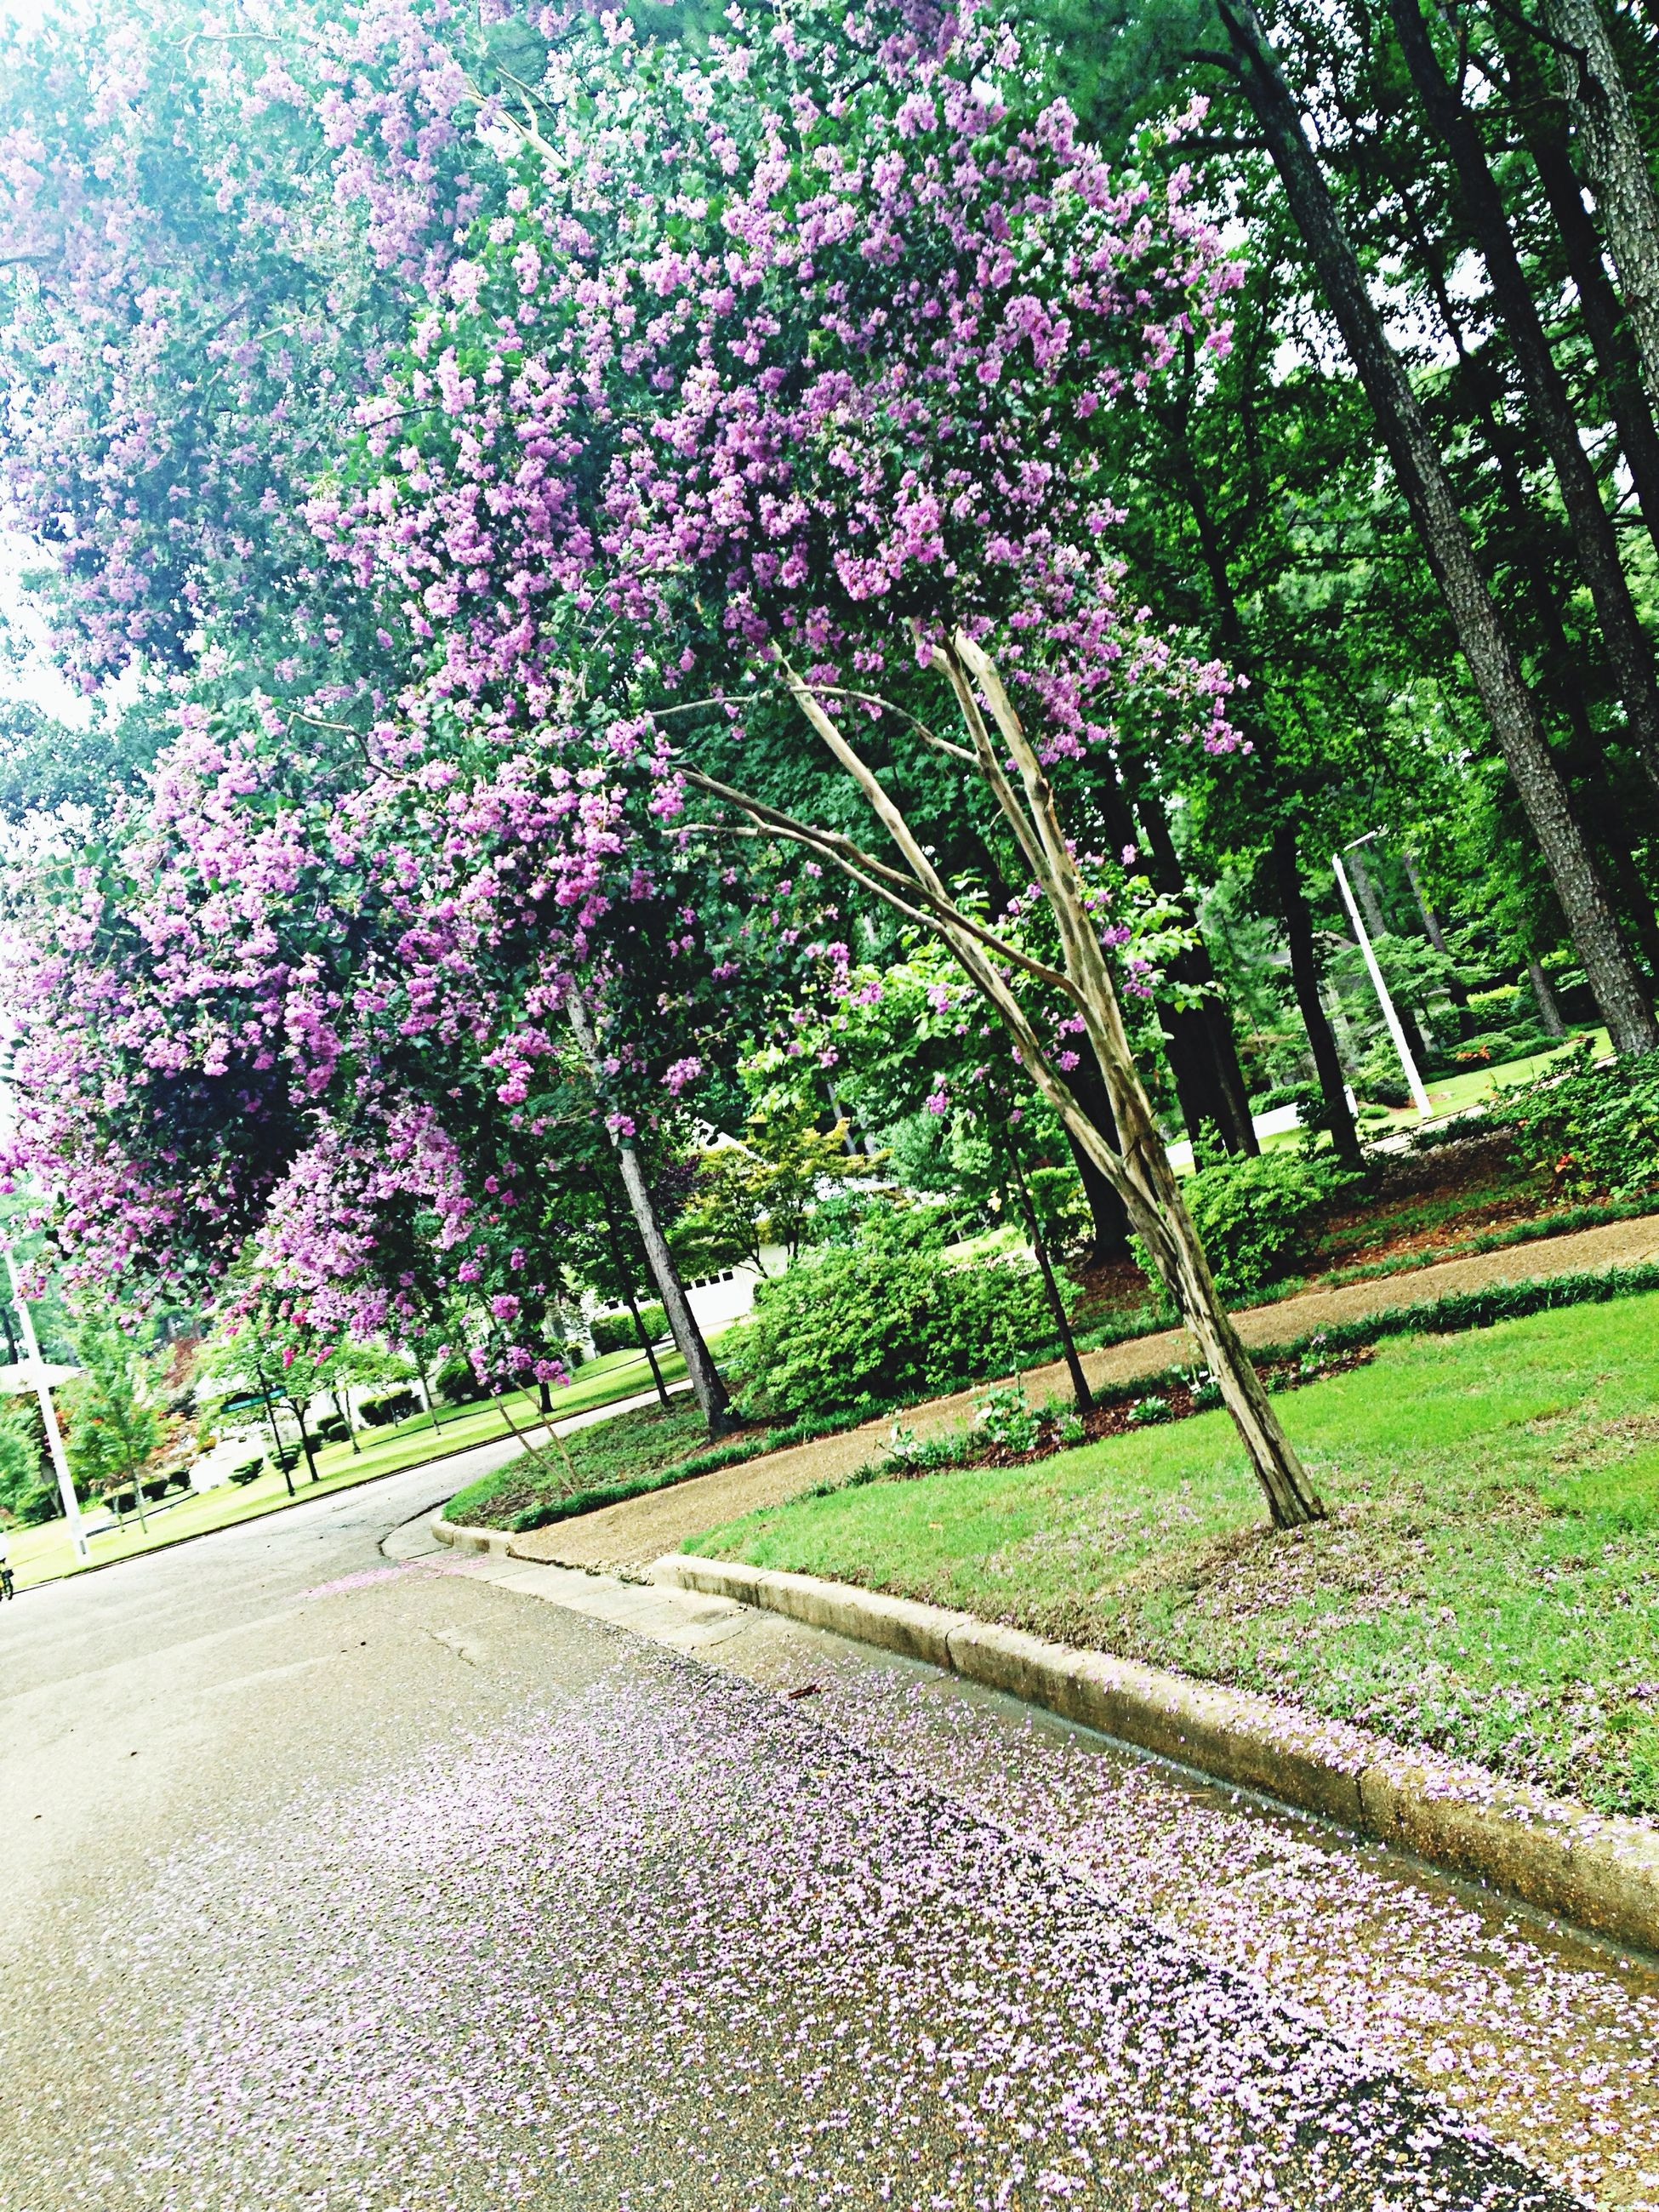 tree, growth, the way forward, flower, transportation, road, plant, nature, diminishing perspective, beauty in nature, day, outdoors, street, sunlight, green color, freshness, footpath, no people, branch, road marking